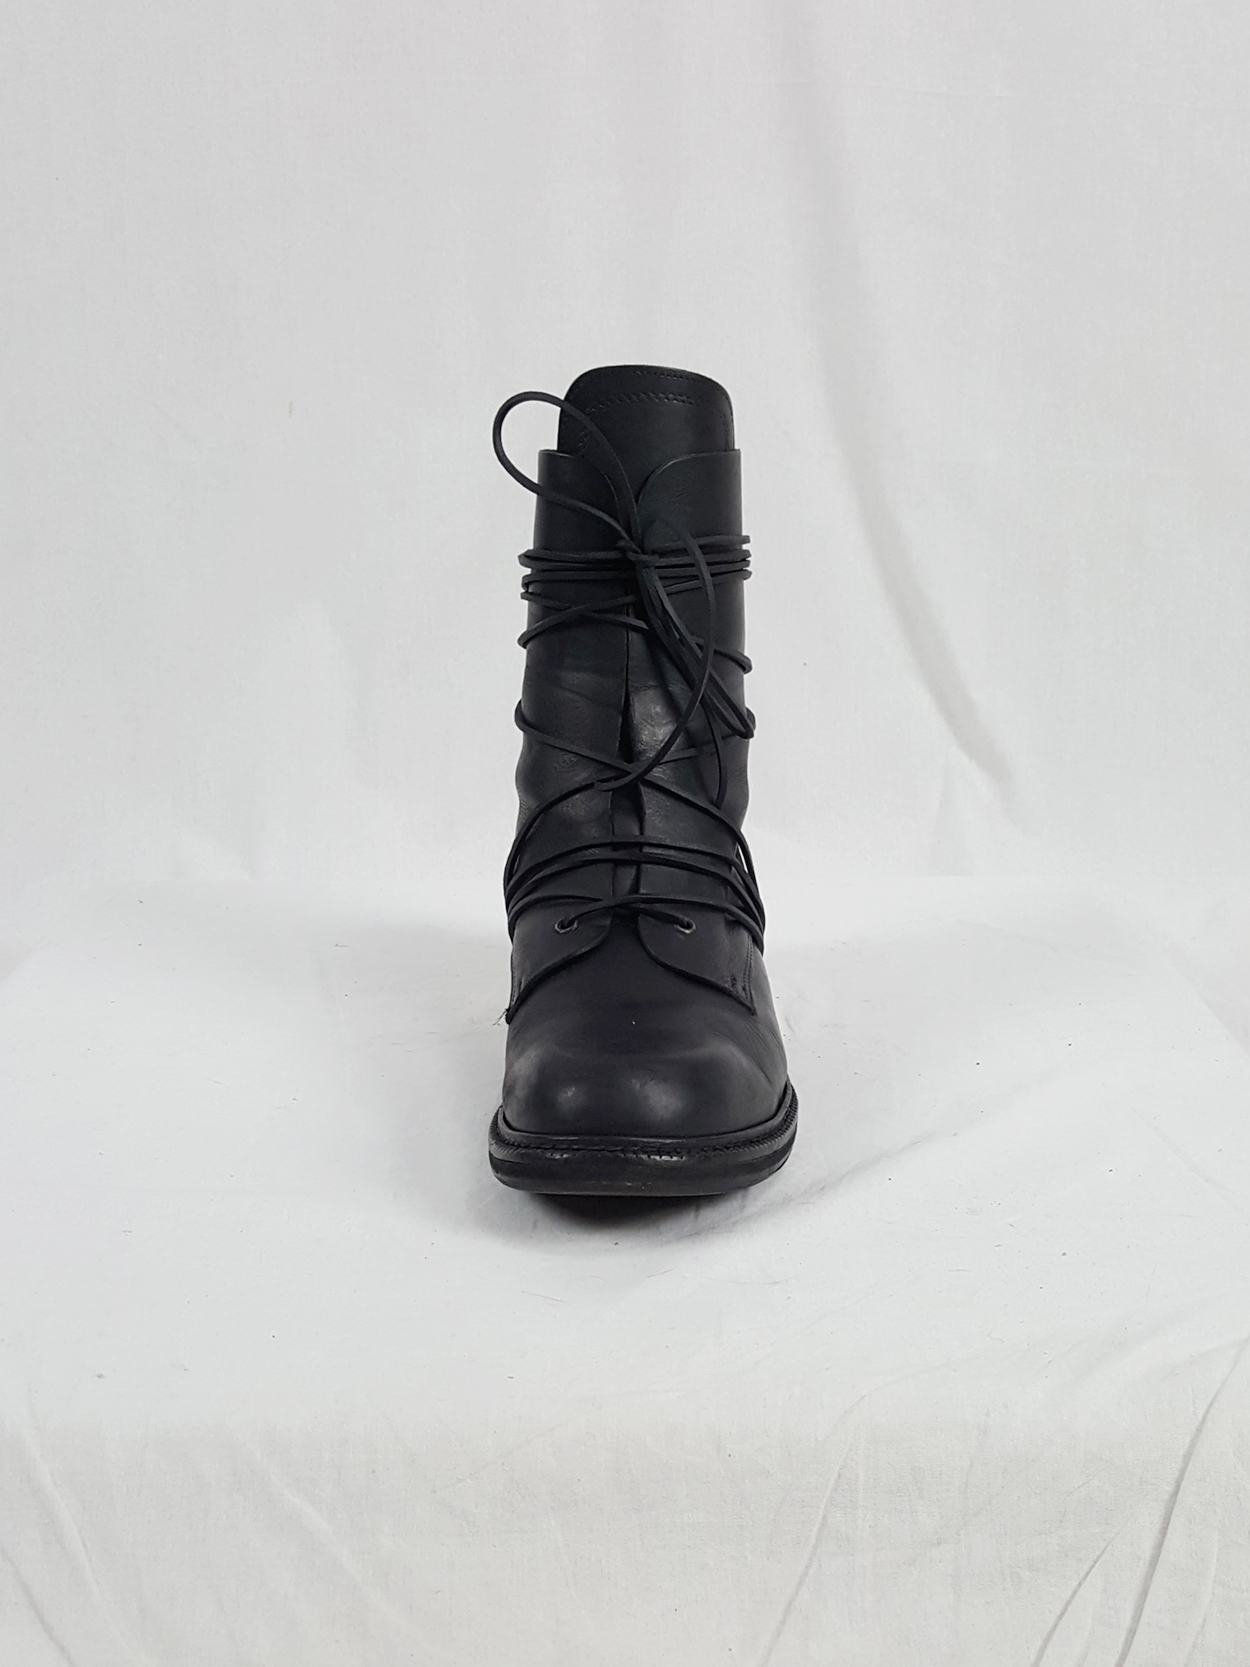 vaniitas vintage Dirk Bikkembergs black tall boots with laces through the metal heel 1990S 90S 174934